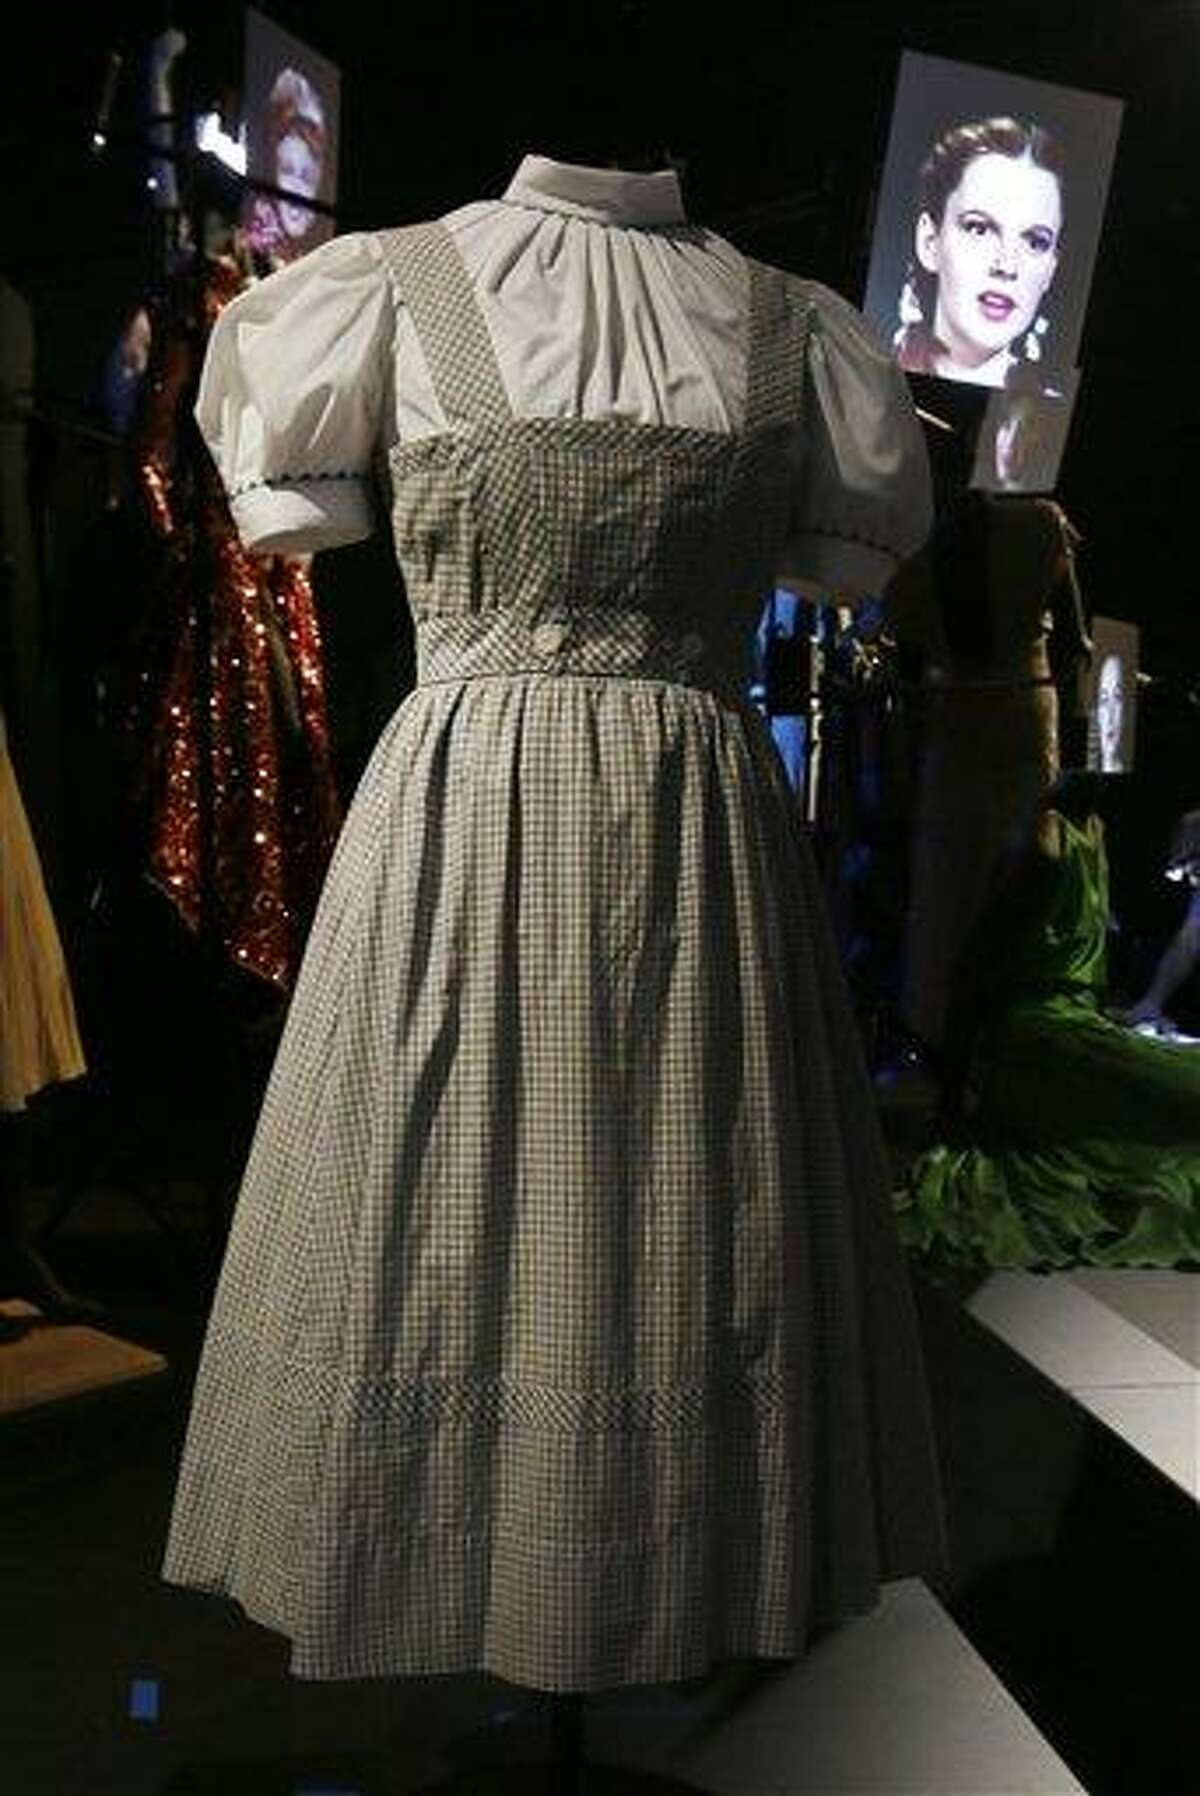 The blue and white gingham pinafore dress worn by Judy Garland in her iconic role of Dorothy designed by Adrian for the 1939 film The Wizard Of Oz, with a video portrait of garland in the background, on display at the Hollywood Costume exhibition at the Victoria and Albert Museum in London. The show showcases more than one hundred movie costumes from a century of film-making. The exhibition opened to the public Oct. 20, 2012 and runs till 27 Jan. 2013. AP Photo/Alastair Grant